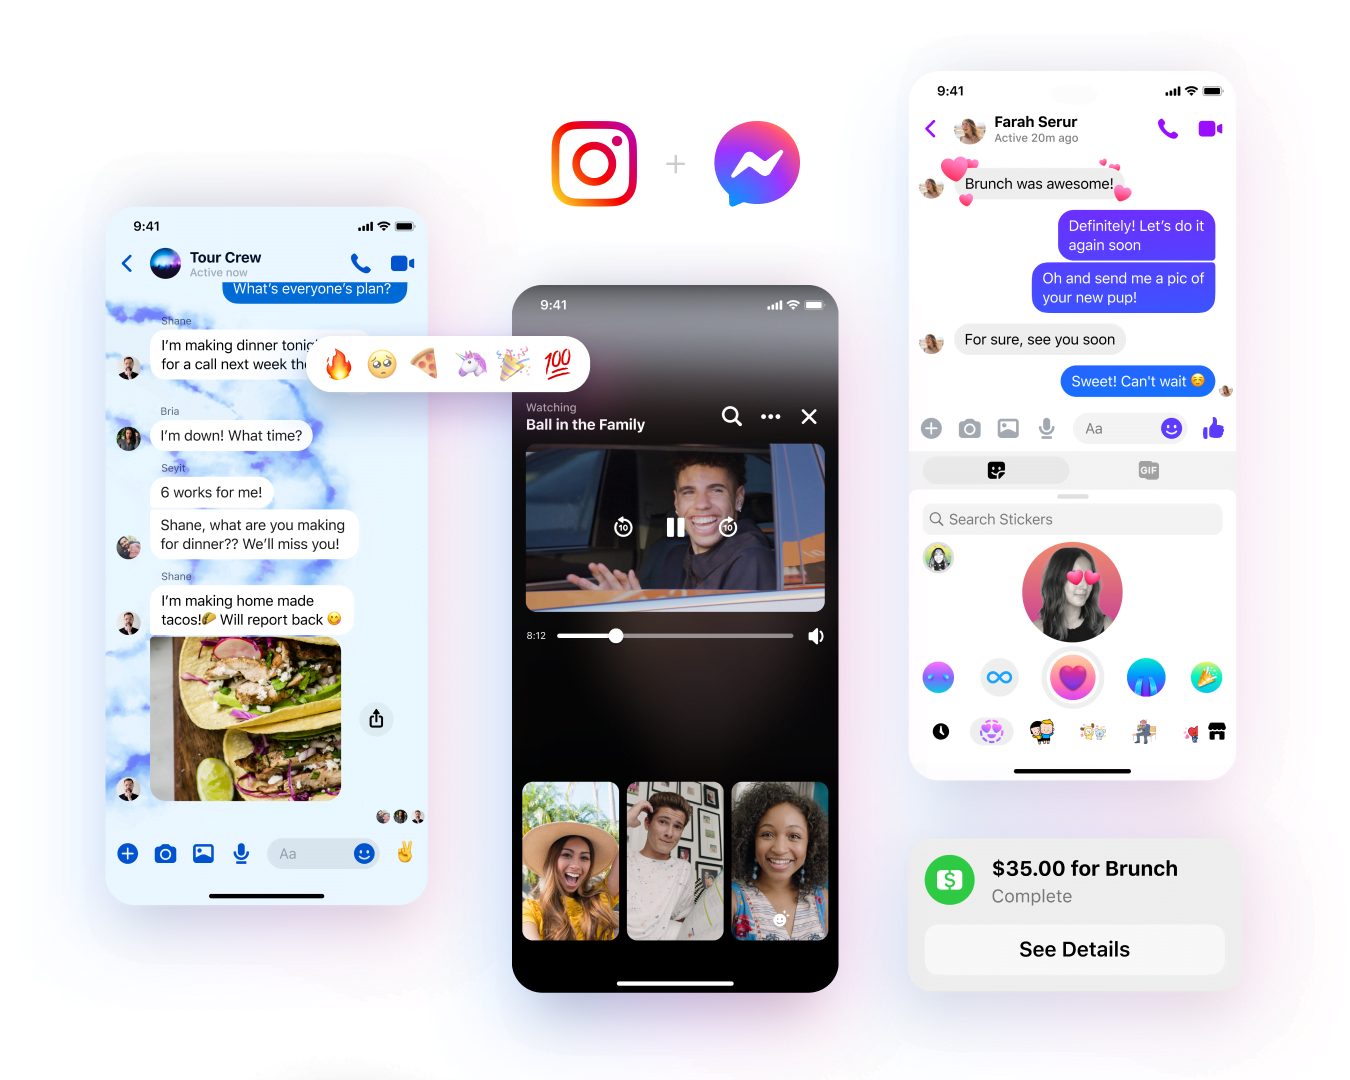 October 2020 Facebook Updates - Facebook Messenger